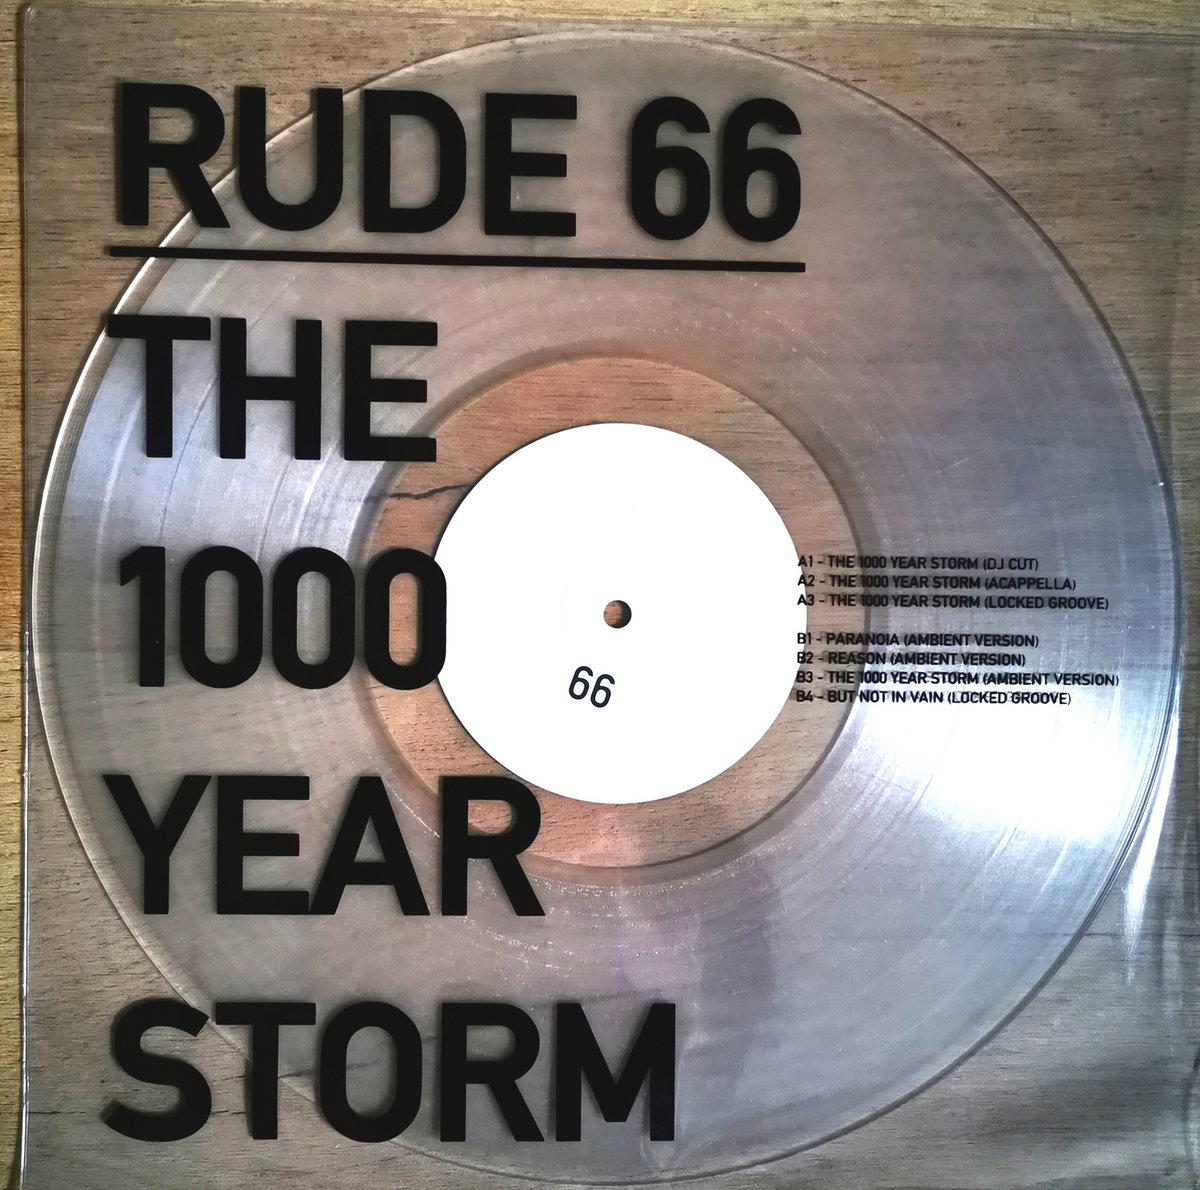 The 1000 Year Storm DJ Cut | Rude 66